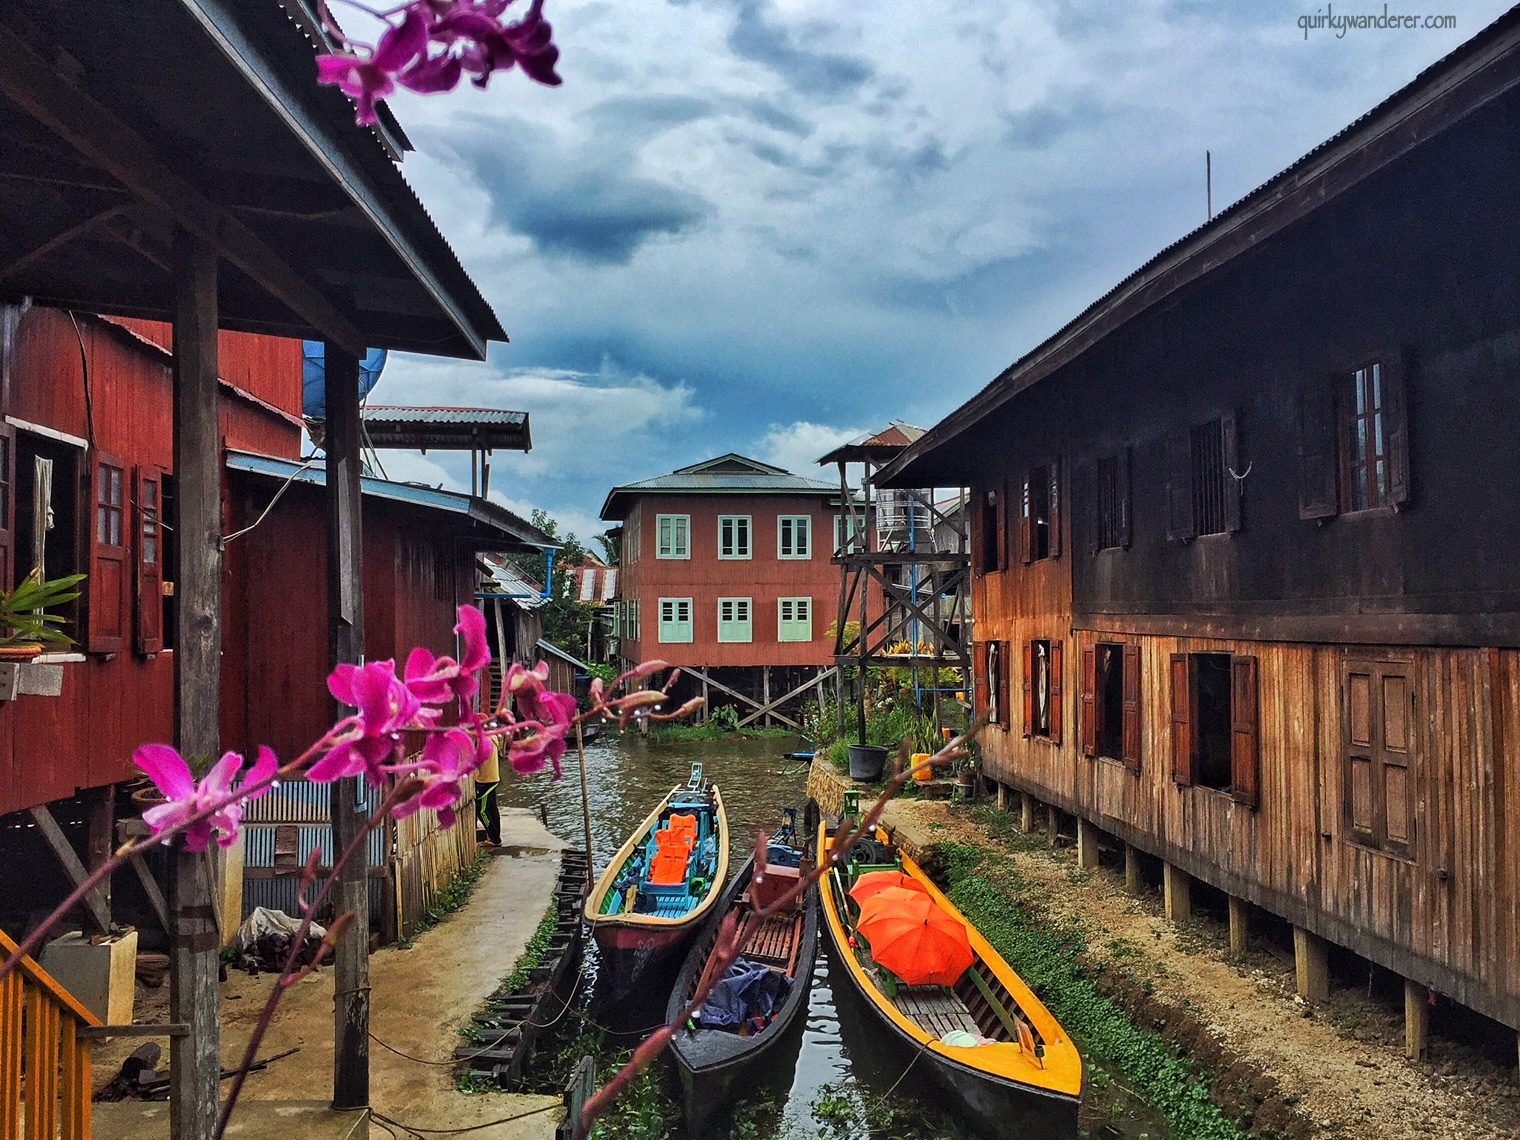 inle-lake-myanmar-boats-and-houses